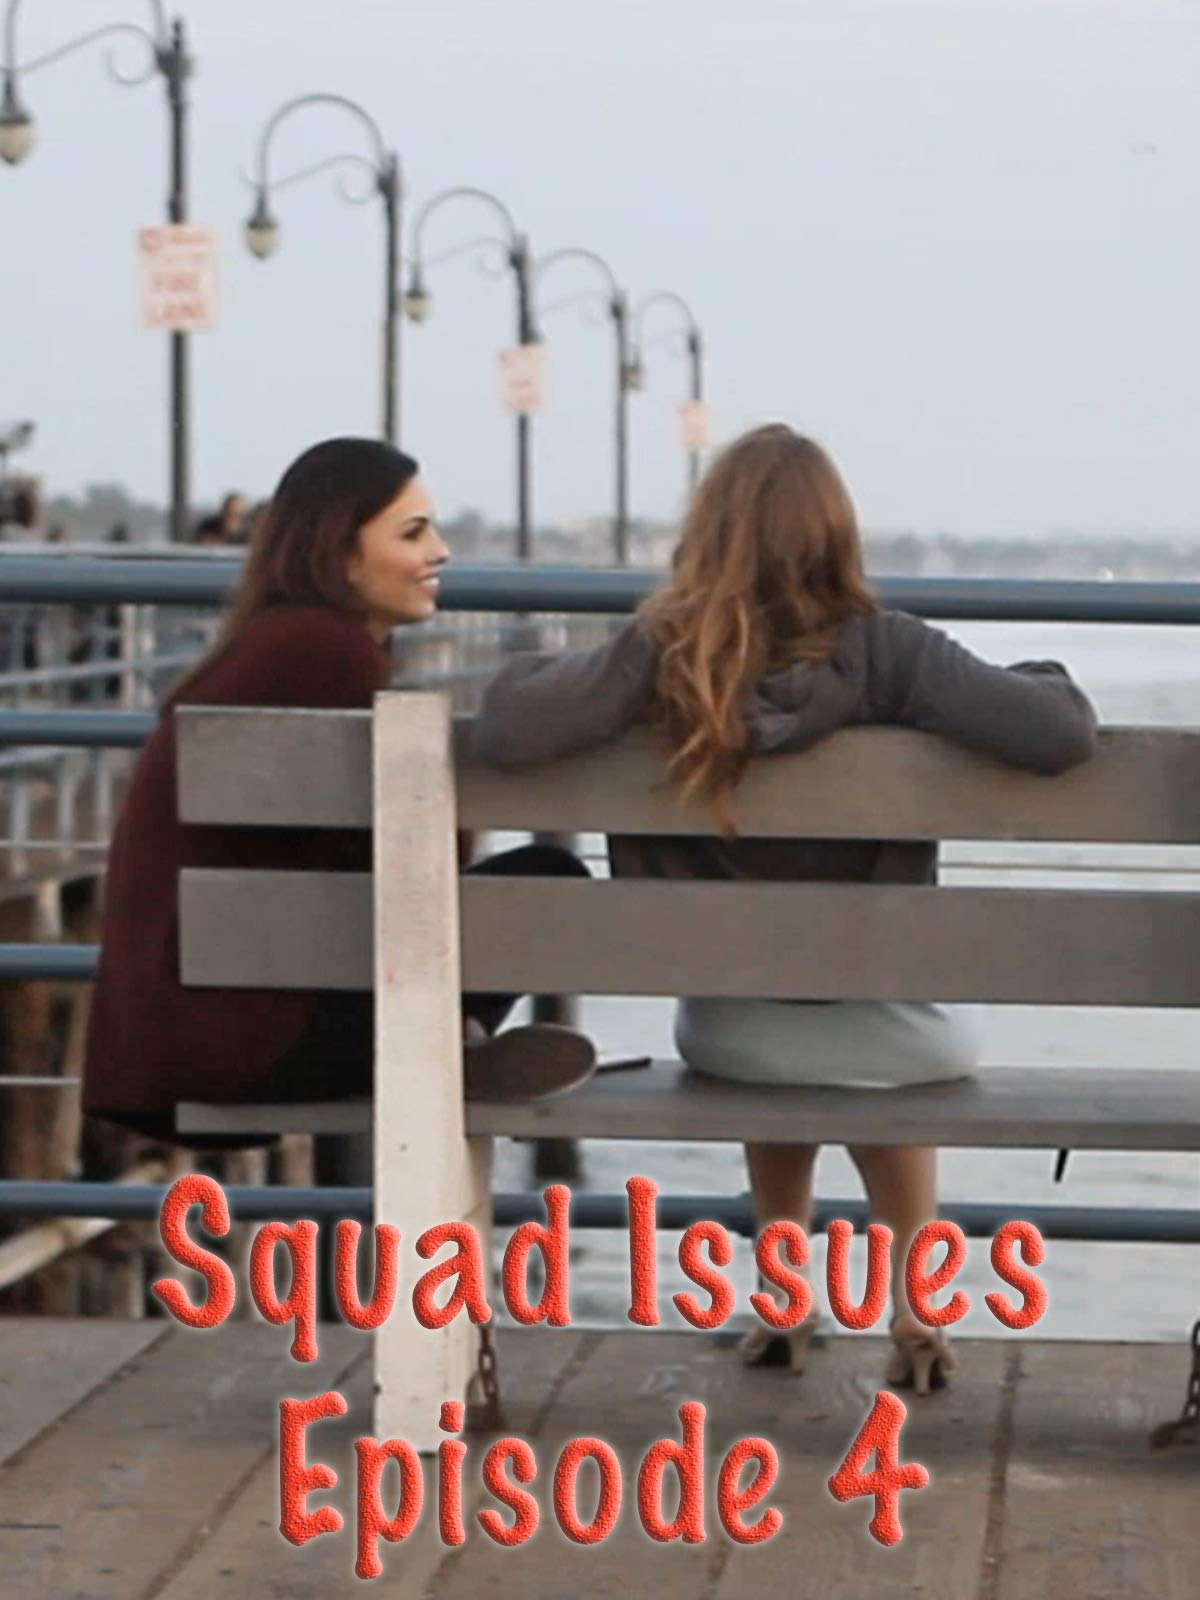 Clip: Squad Issues Episode 4